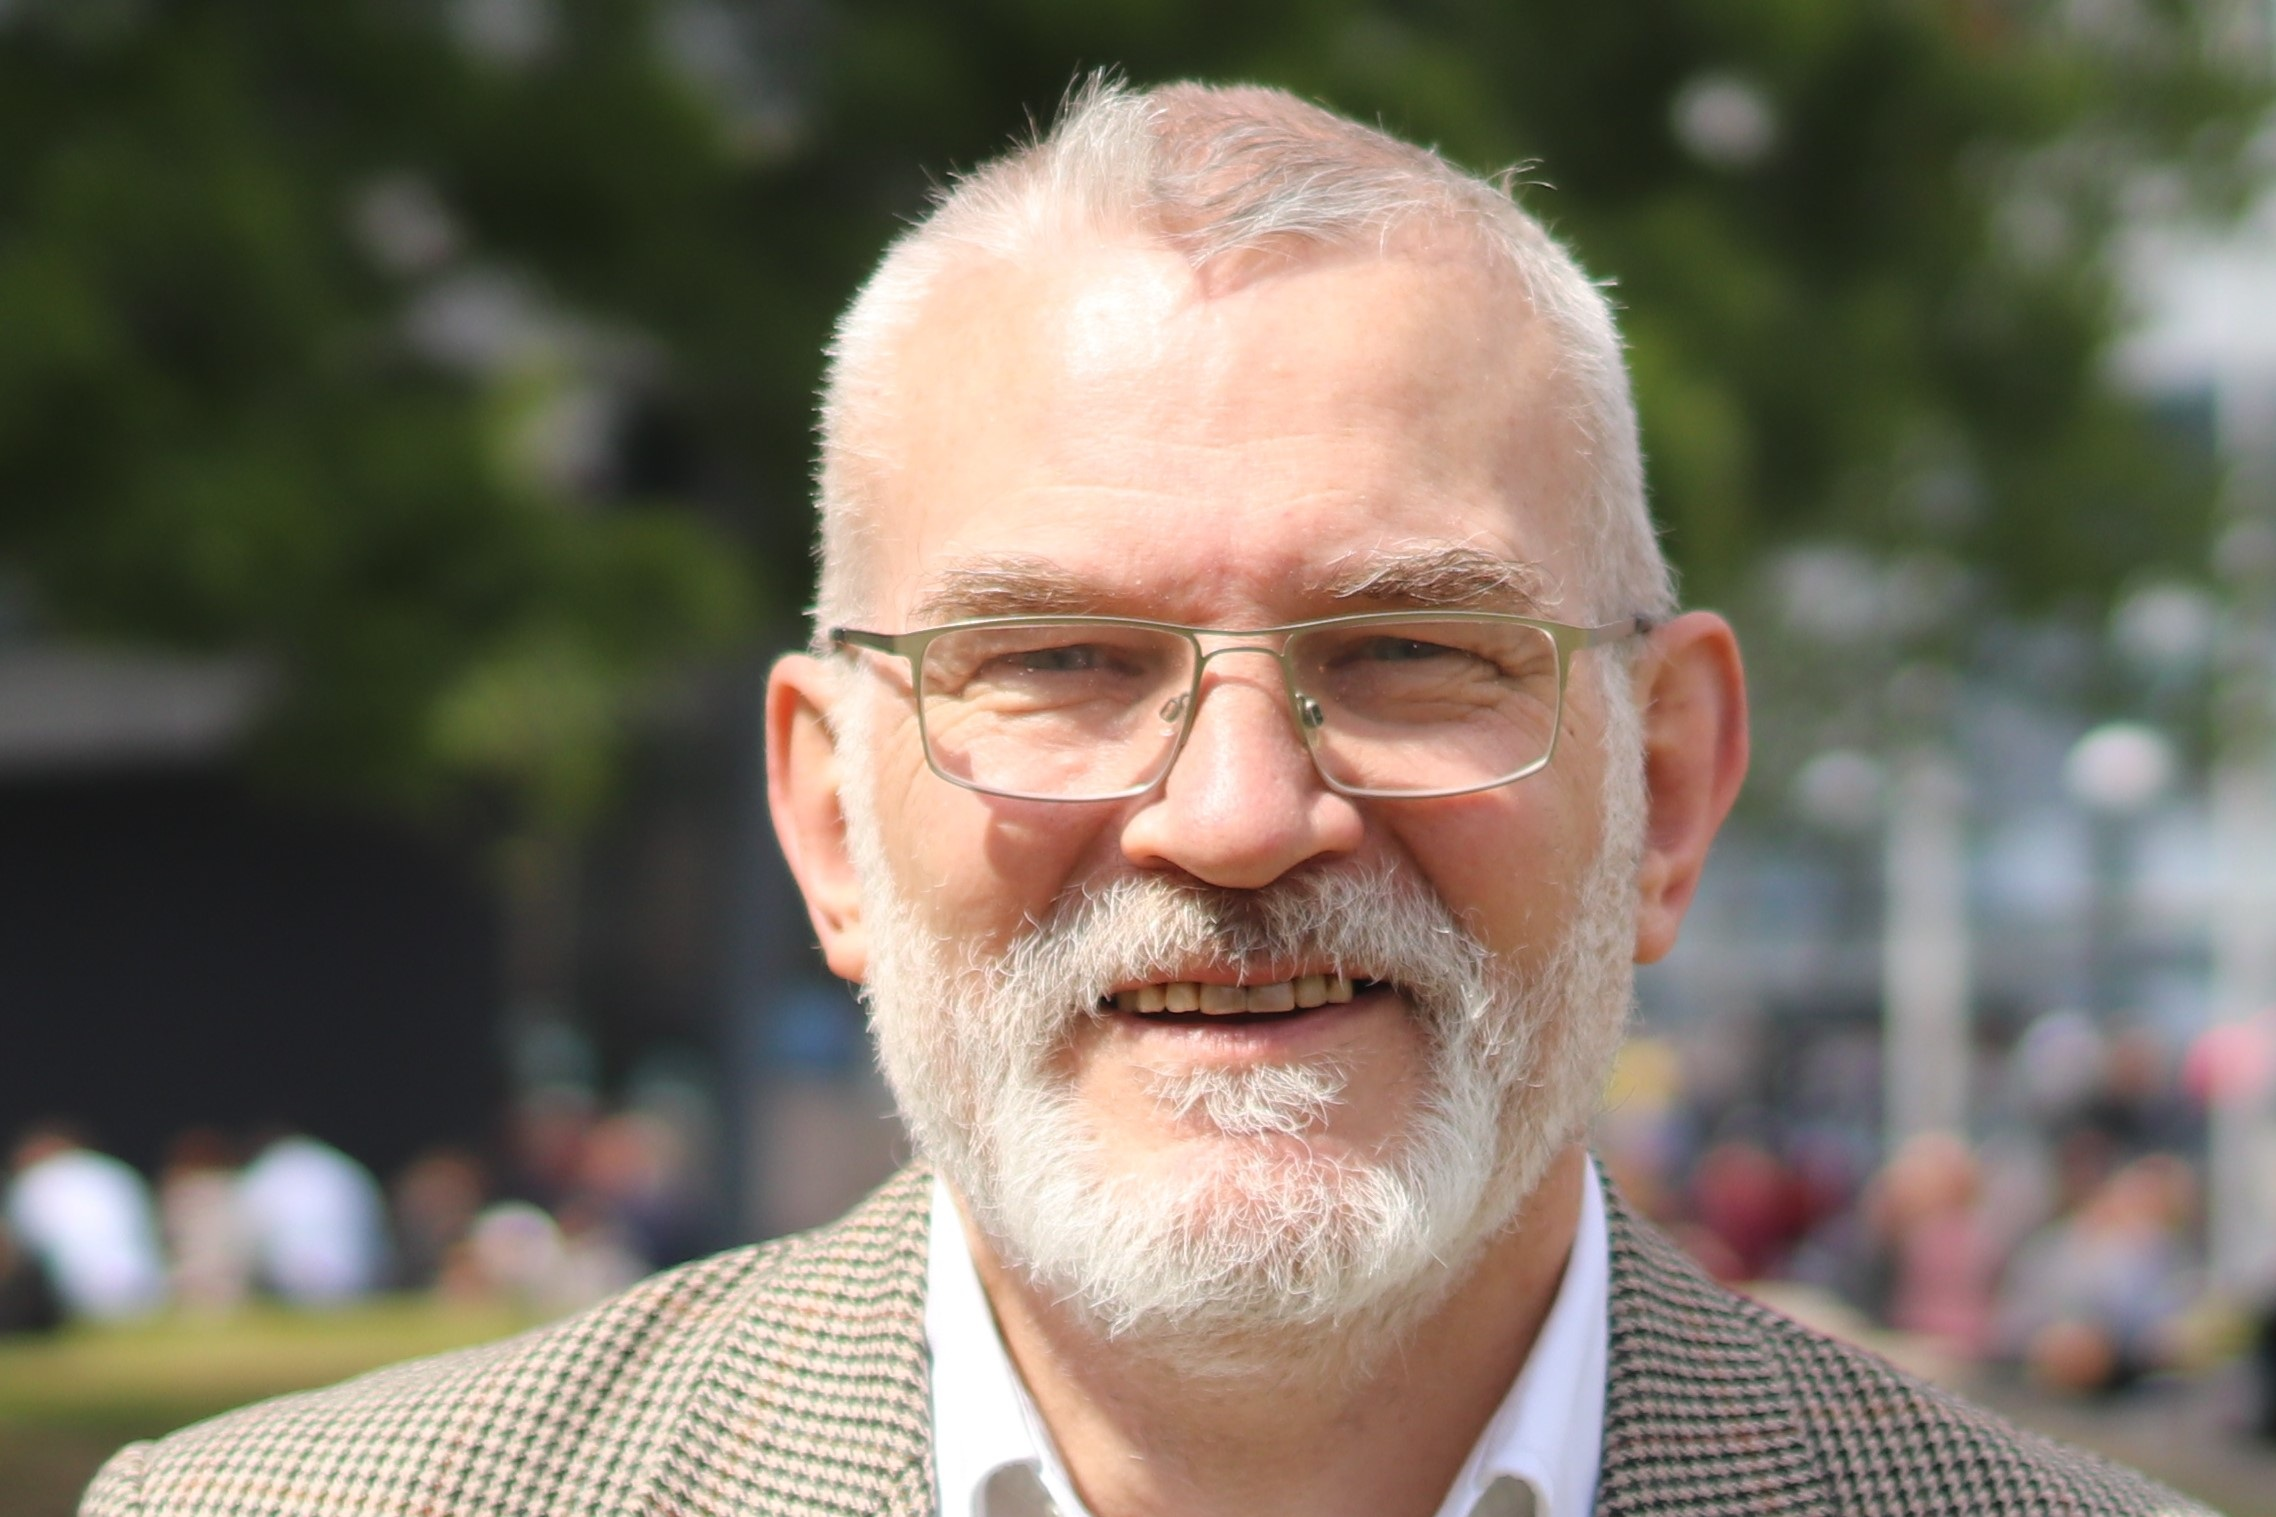 - Andrew Boff is a London-wide elected Conservative Assembly Member at the Greater London Authority.